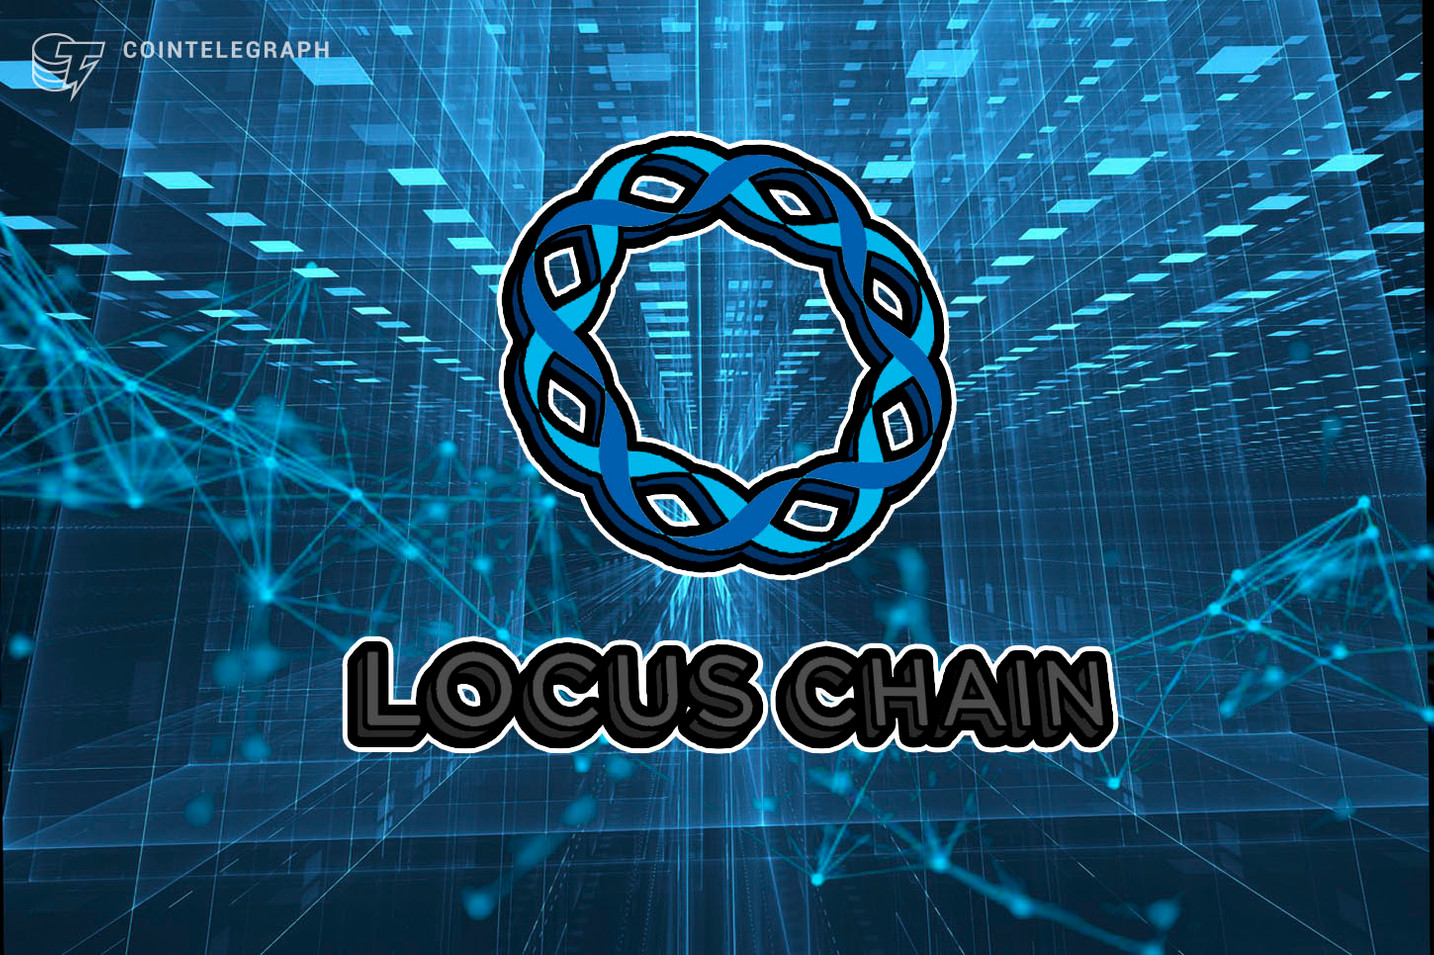 Fast, Light and flexible, the Next-Generation Blockchain Platform 'Locus Chain' Has Emerged ... !!